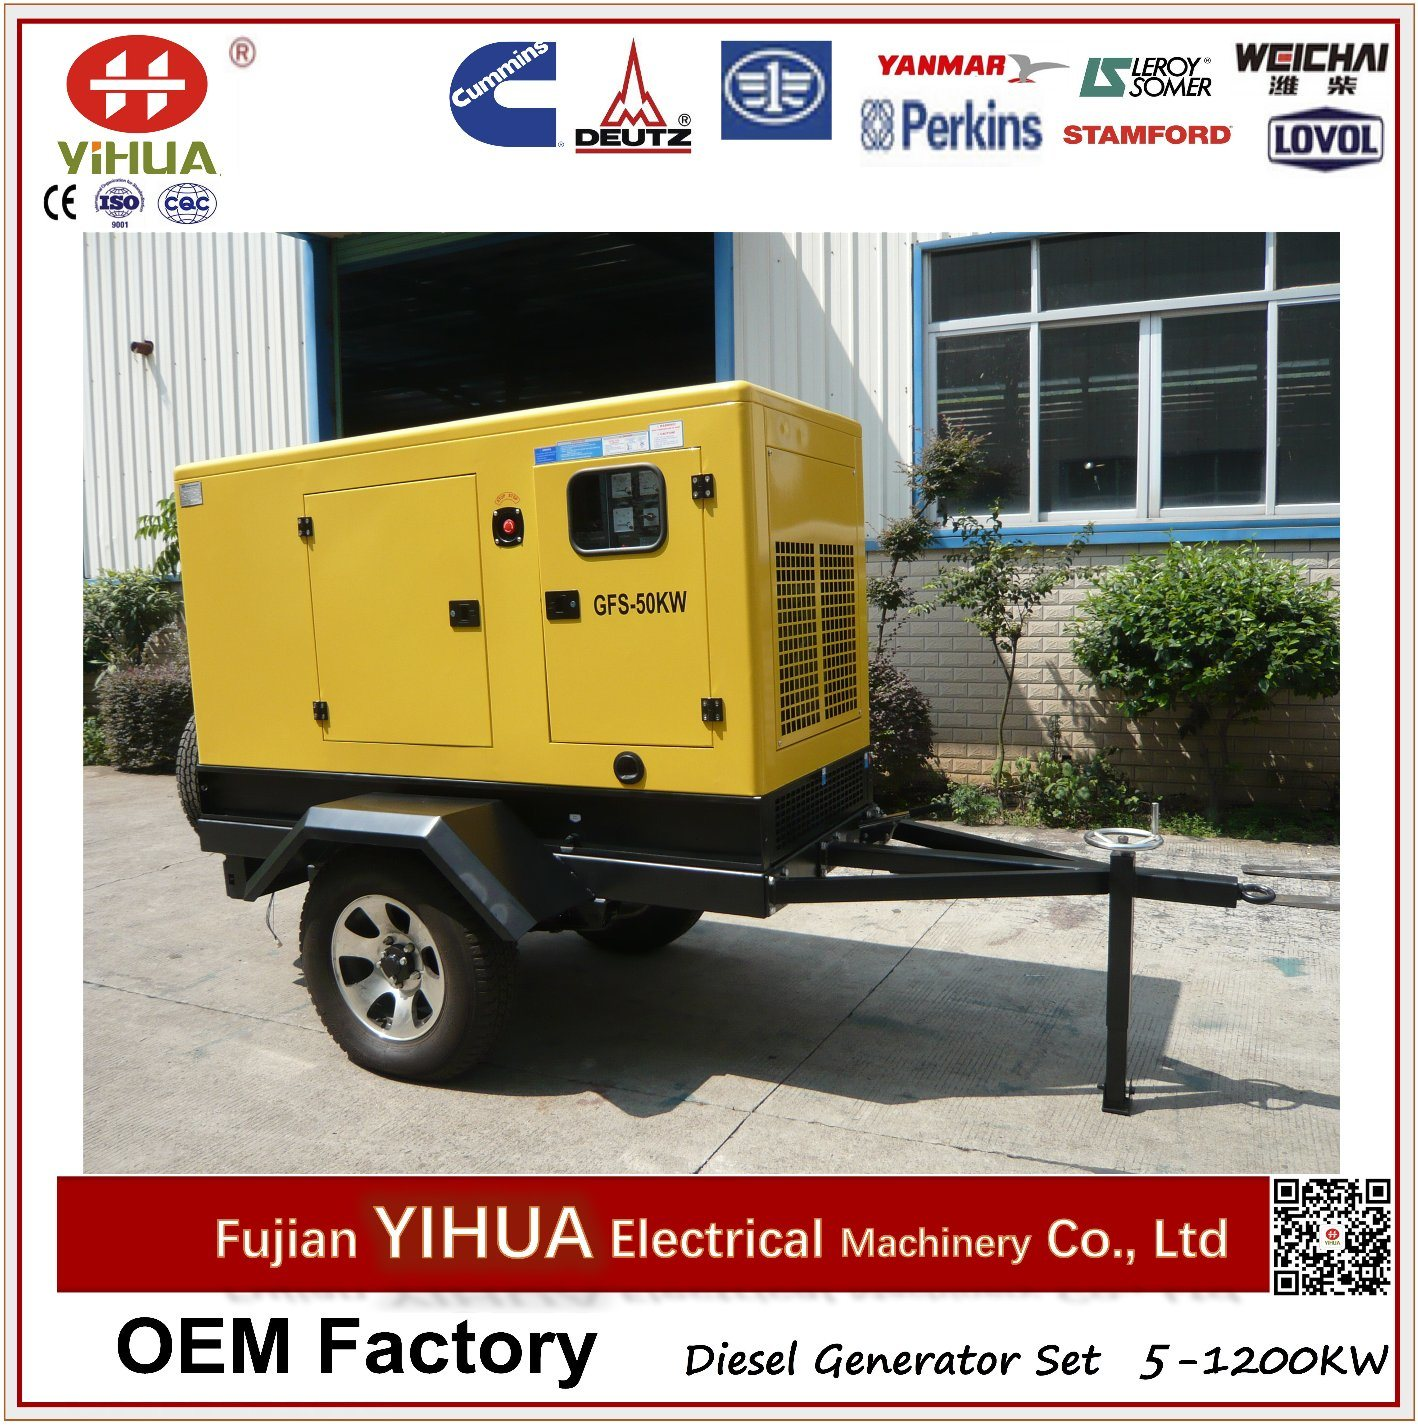 China Mobile Trailer Generator 50kw 625kva Weifang Tianhe Two Transfer Switch Wiringautomatic Suyang Atsautomatic Wheels Silent Diesel Set